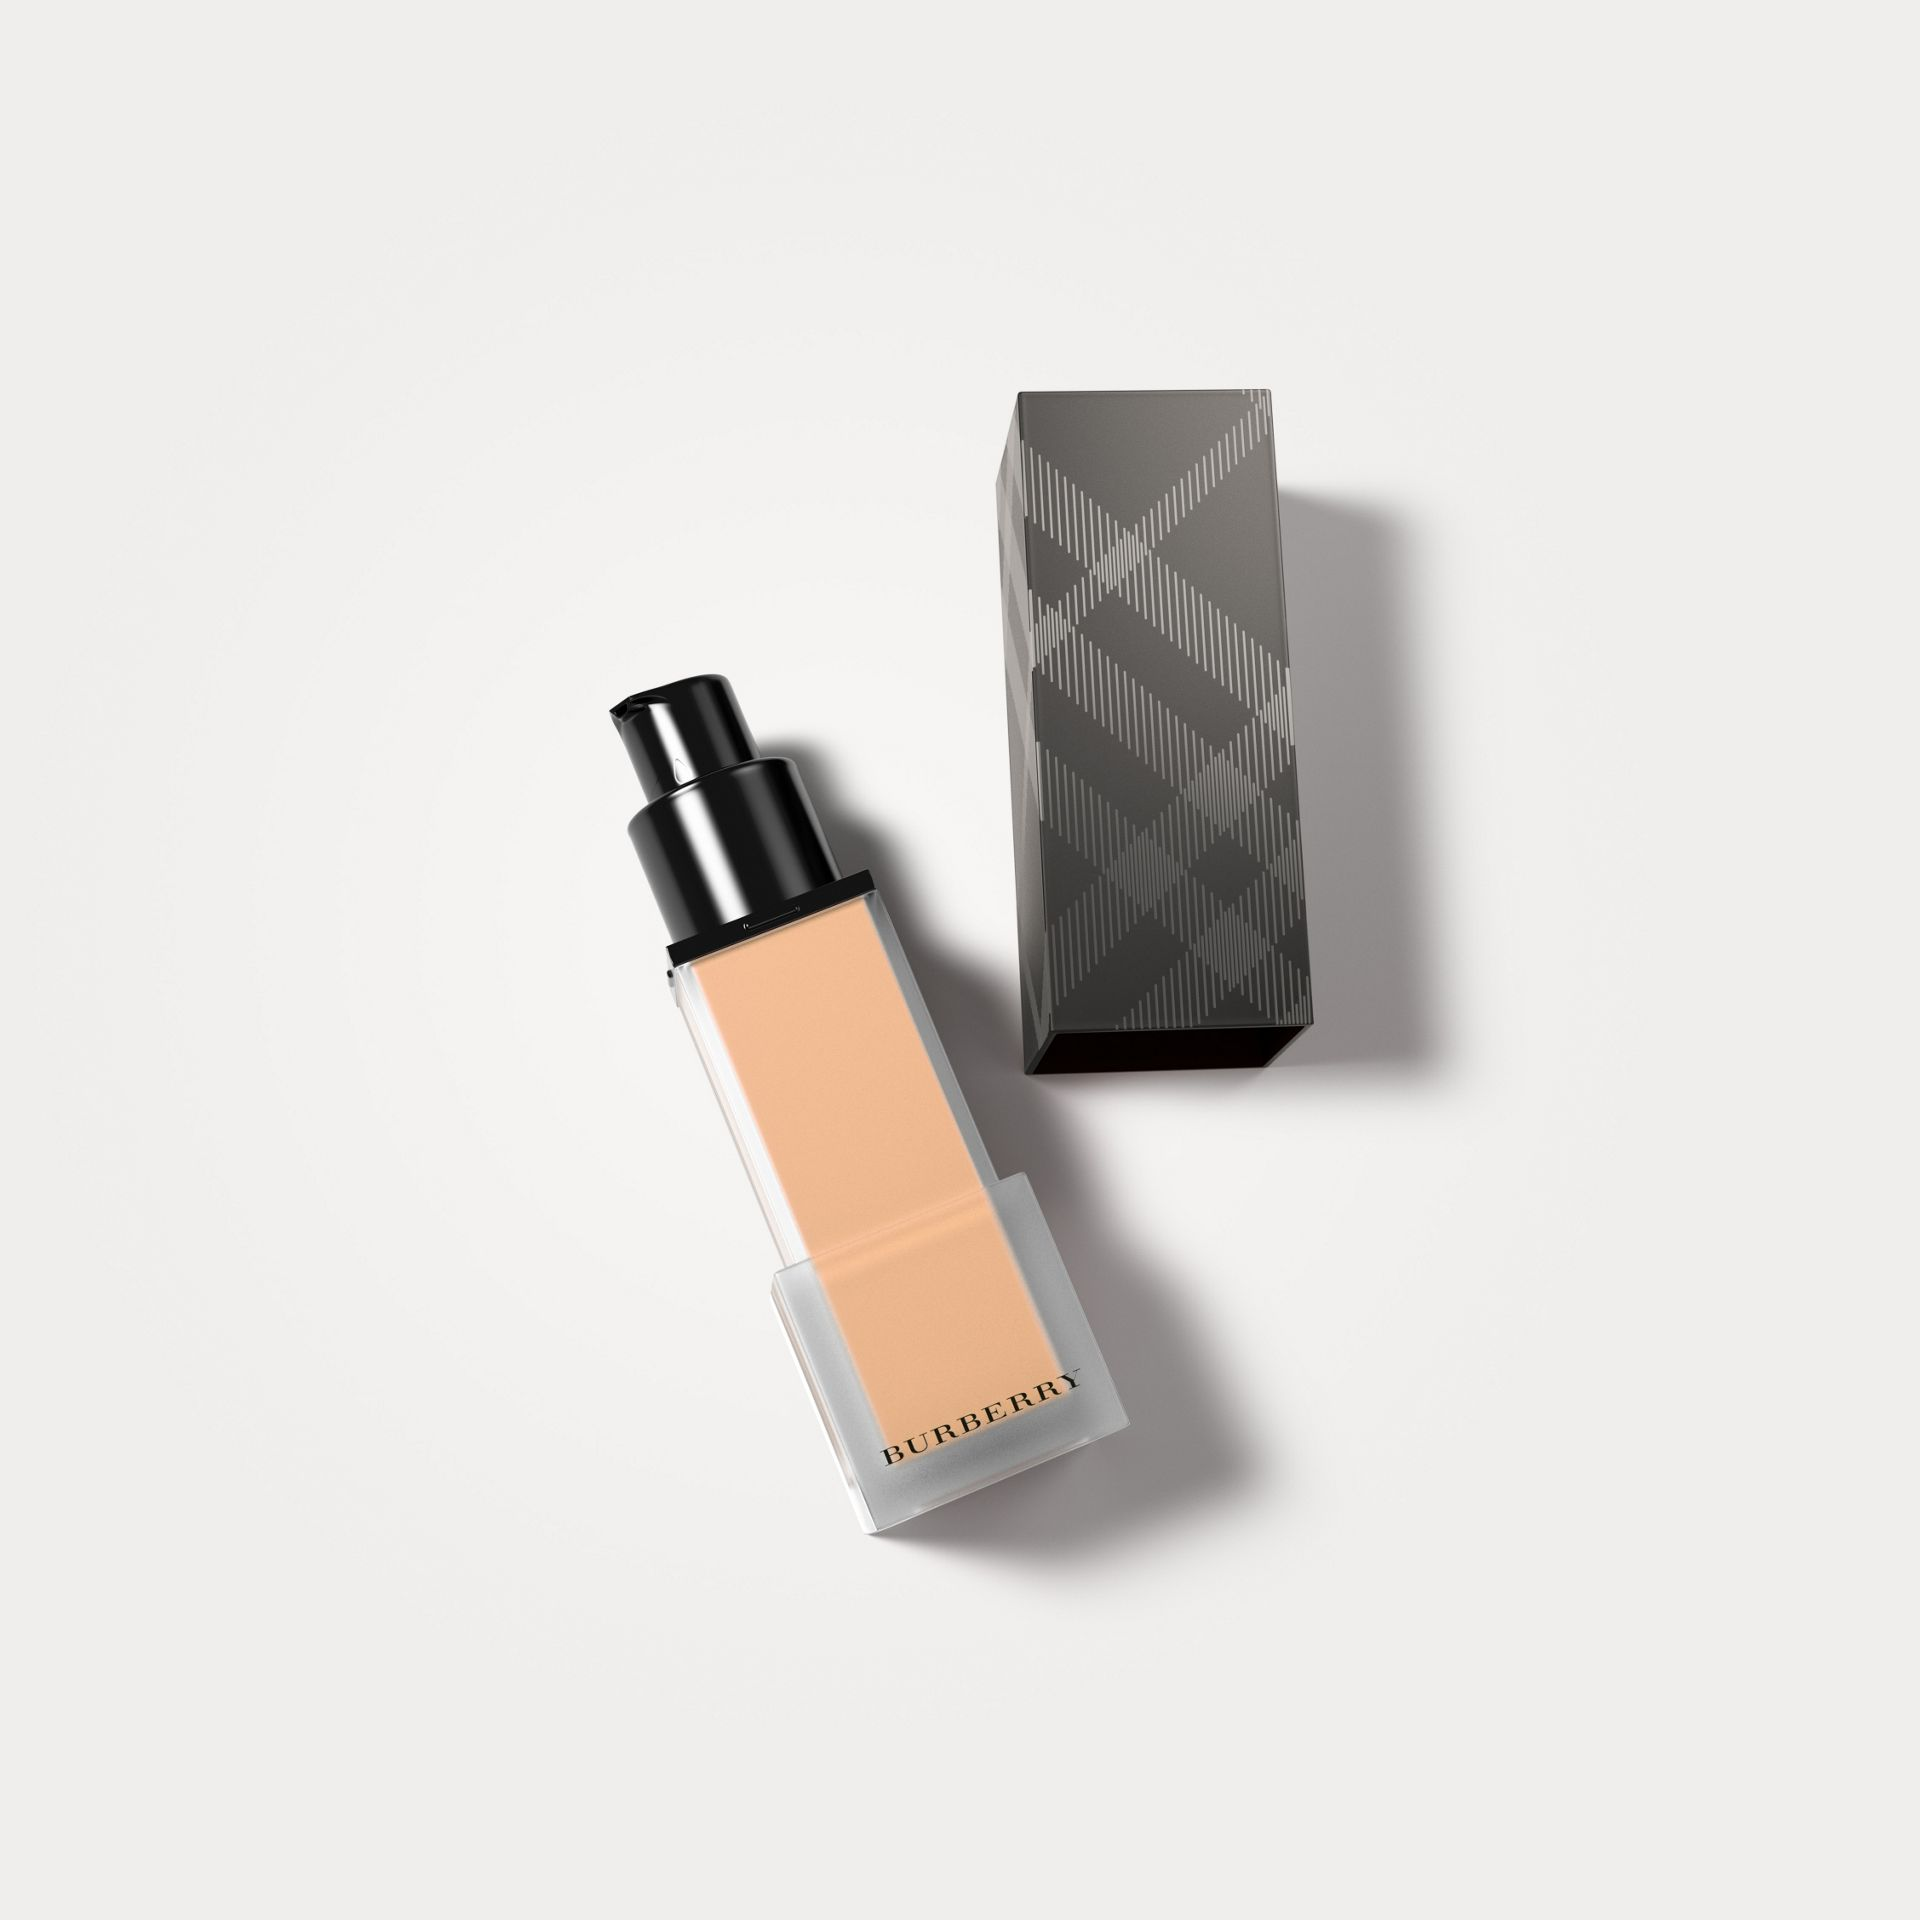 Dark sable 36 Burberry Cashmere Sunscreen SPF 20 – Dark Sable No.36 - gallery image 1